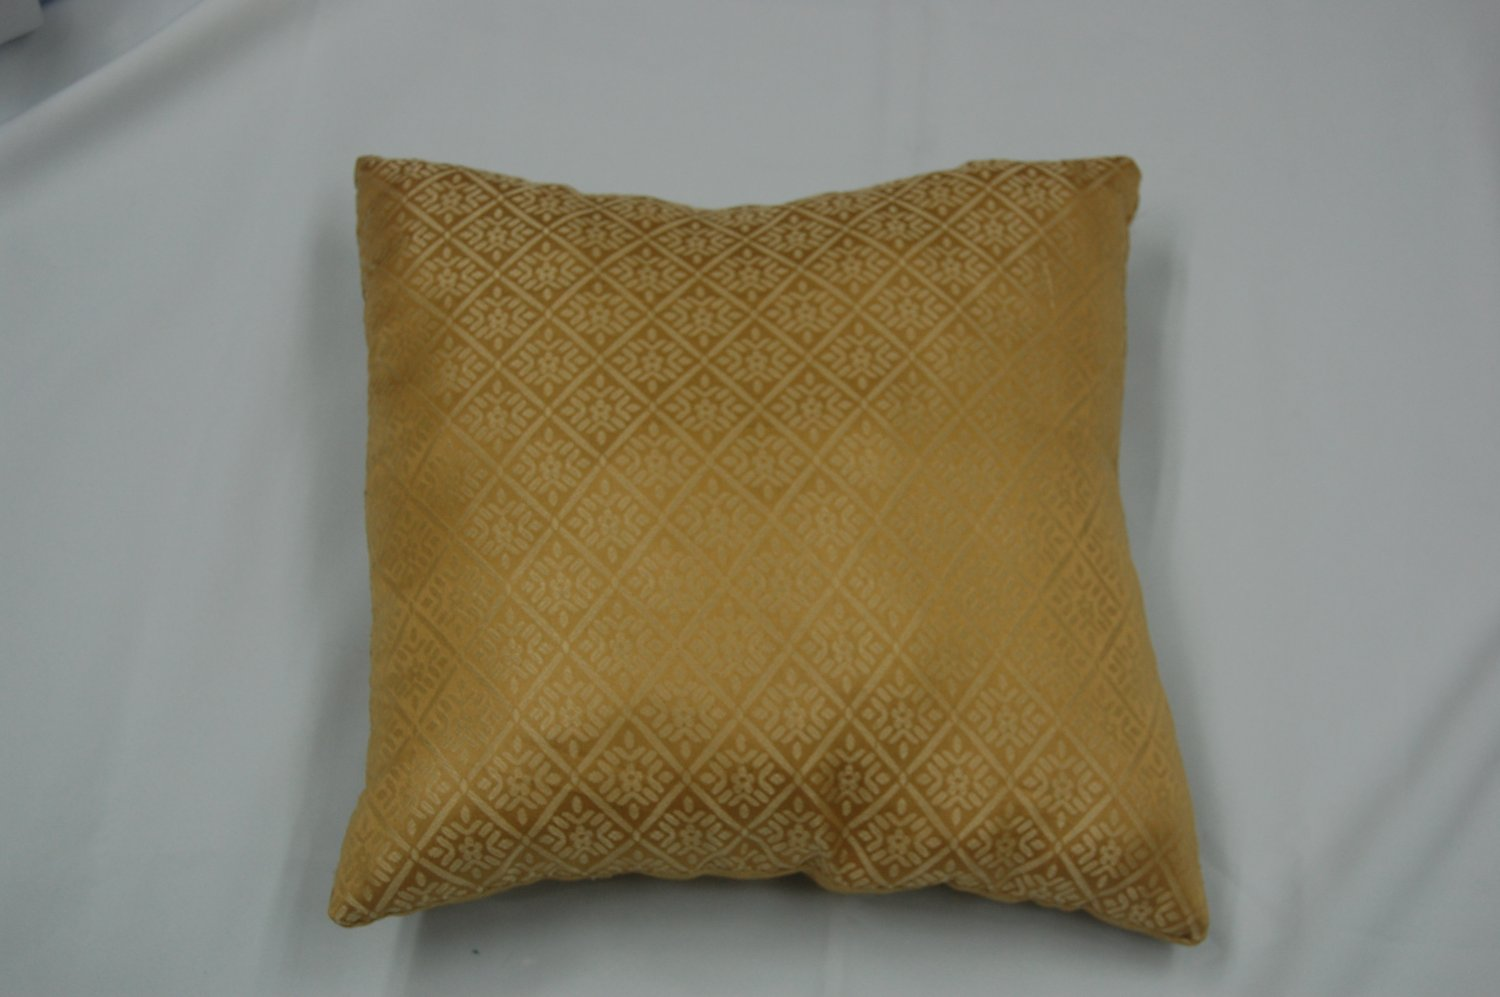 Jacquard Decorative Pillows : JACQUARD THROW PILLOW GOLD